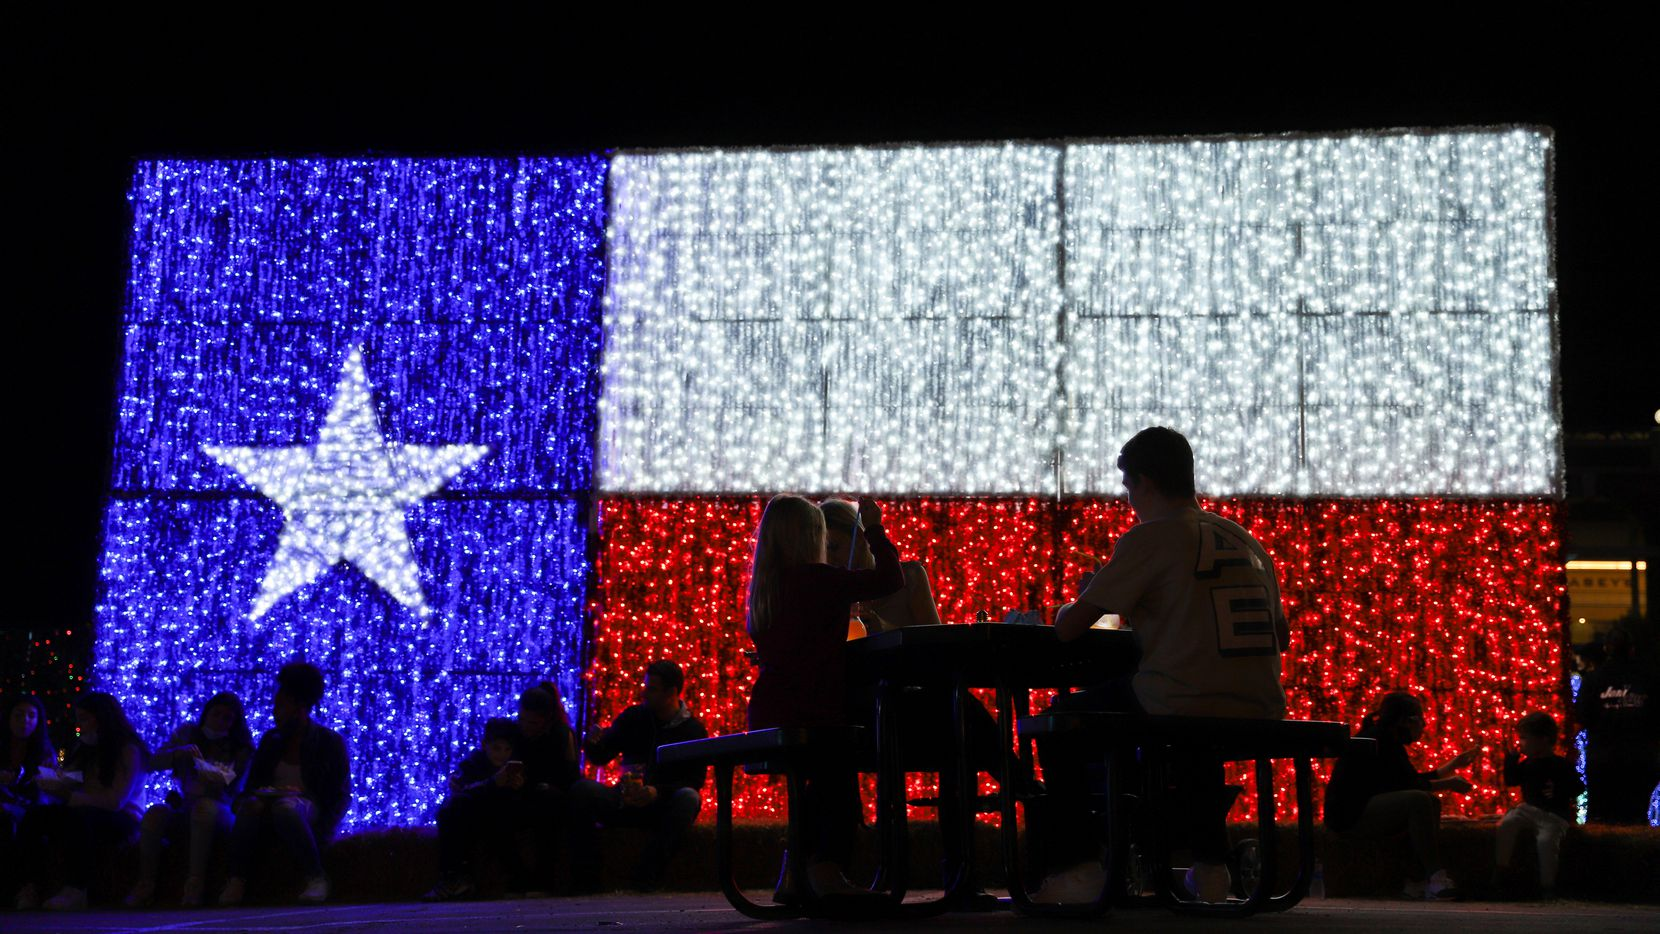 Guests enjoy food and drink in front of a Texas flag lighted sculpture at Luminova Holidays at Globe Life Field in Arlington, Nov. 21, 2020.